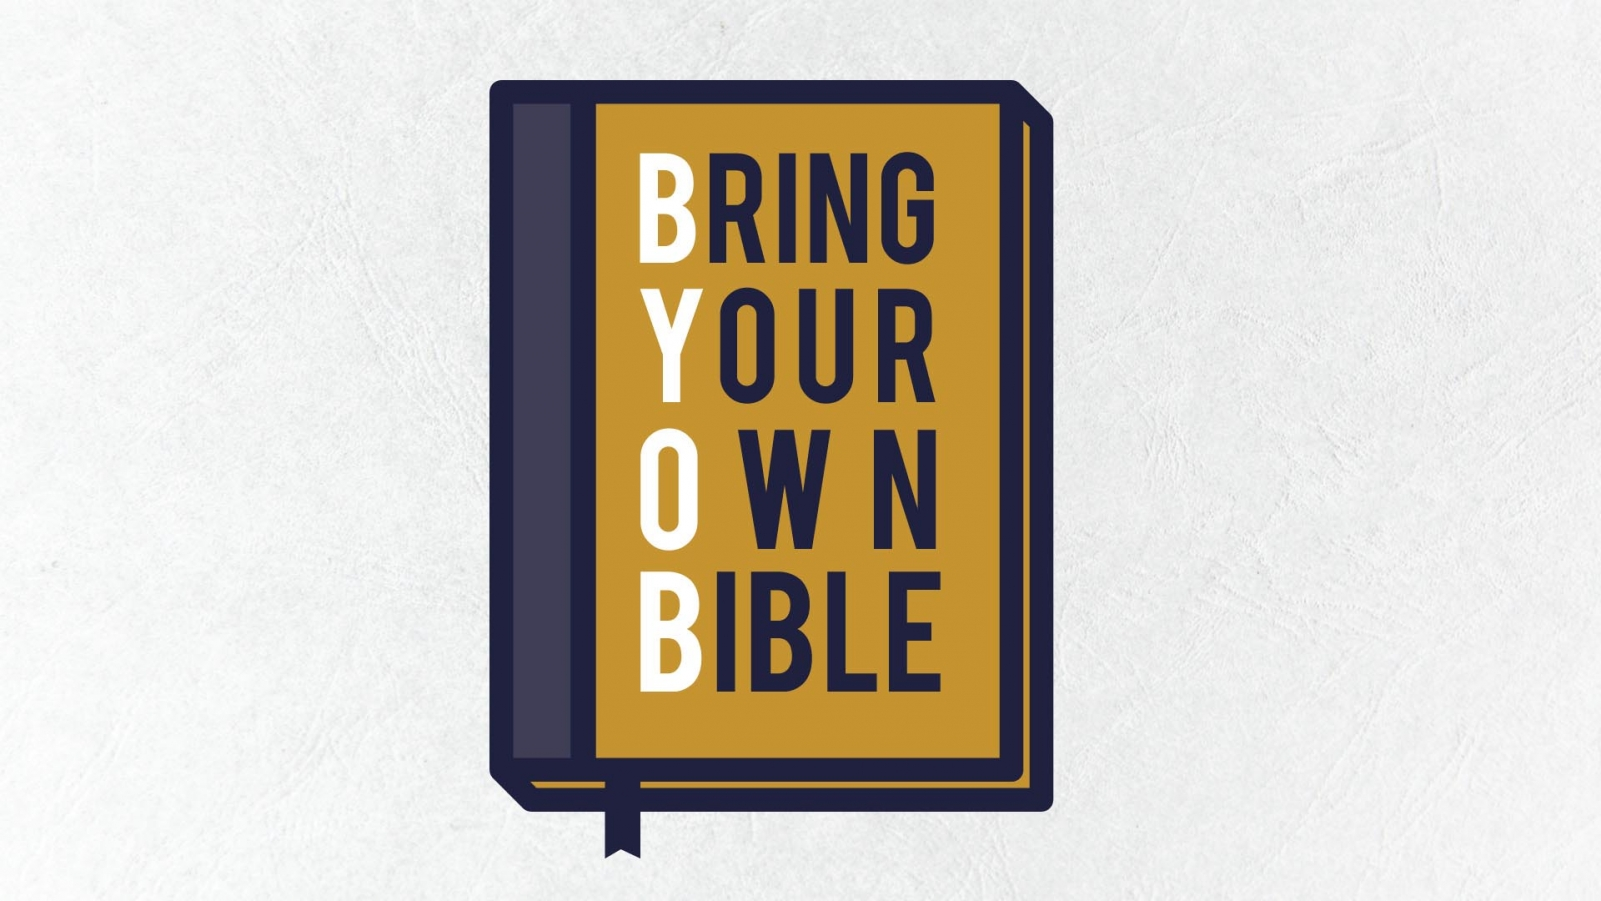 BYOB: Bring Your Own Bible